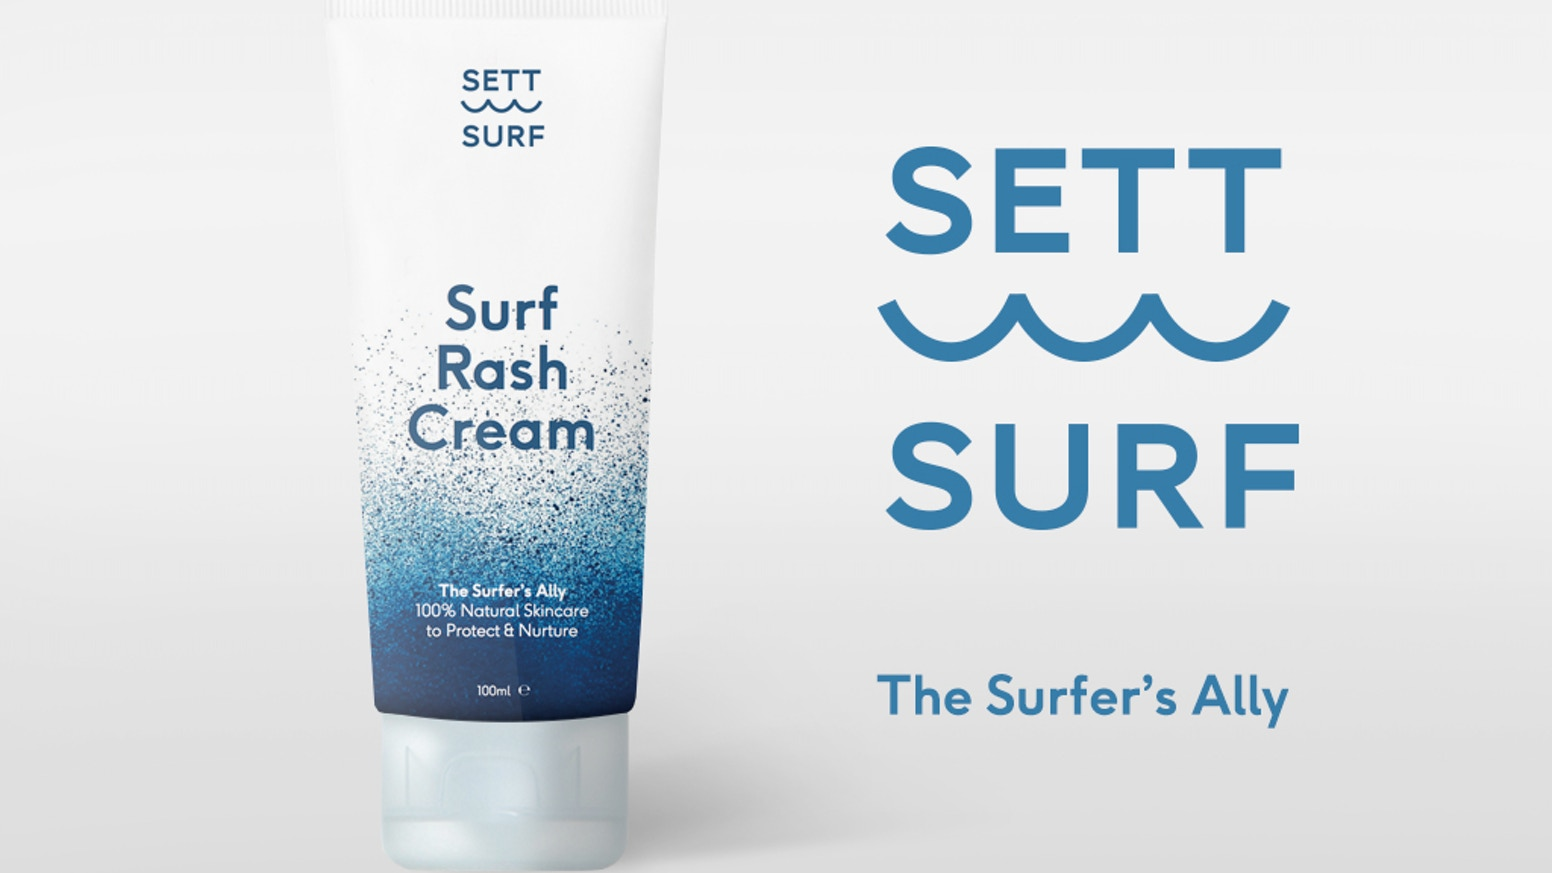 Got surf rash? There's a cream for that (and more). 100% natural, multi-purpose skincare, created for the unique needs of surfers.